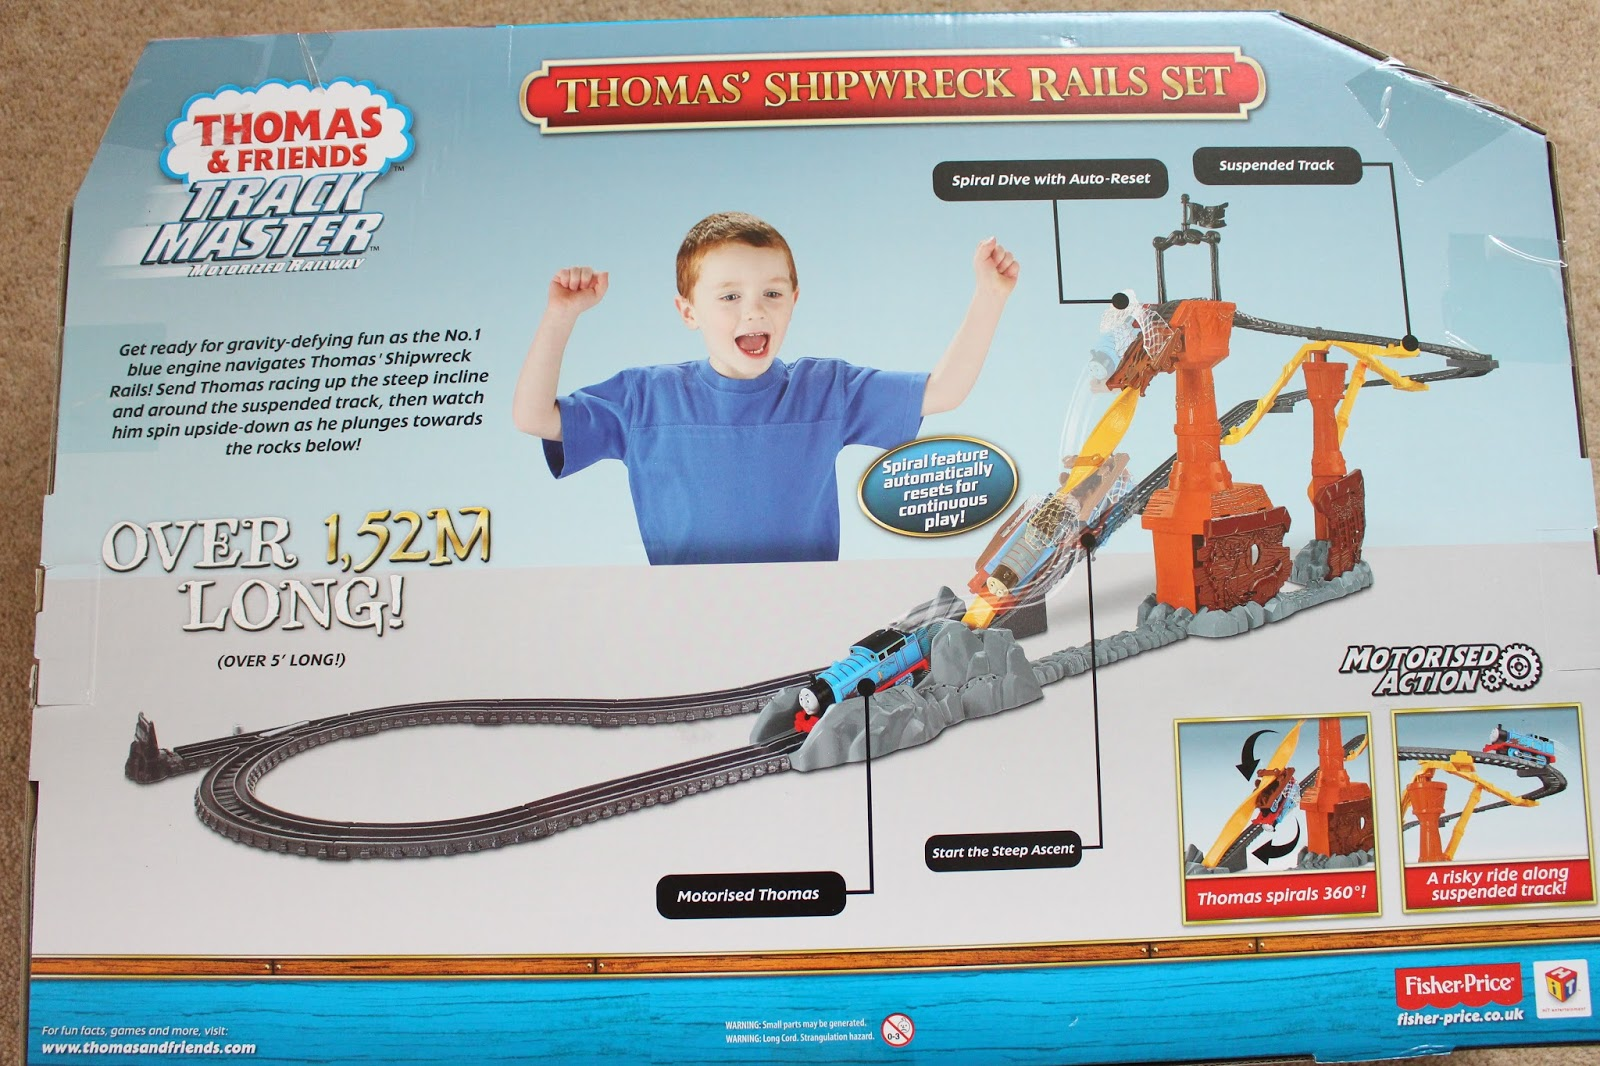 Thomas Friends Trackmaster Shipwreck Rails Review The Witt Family